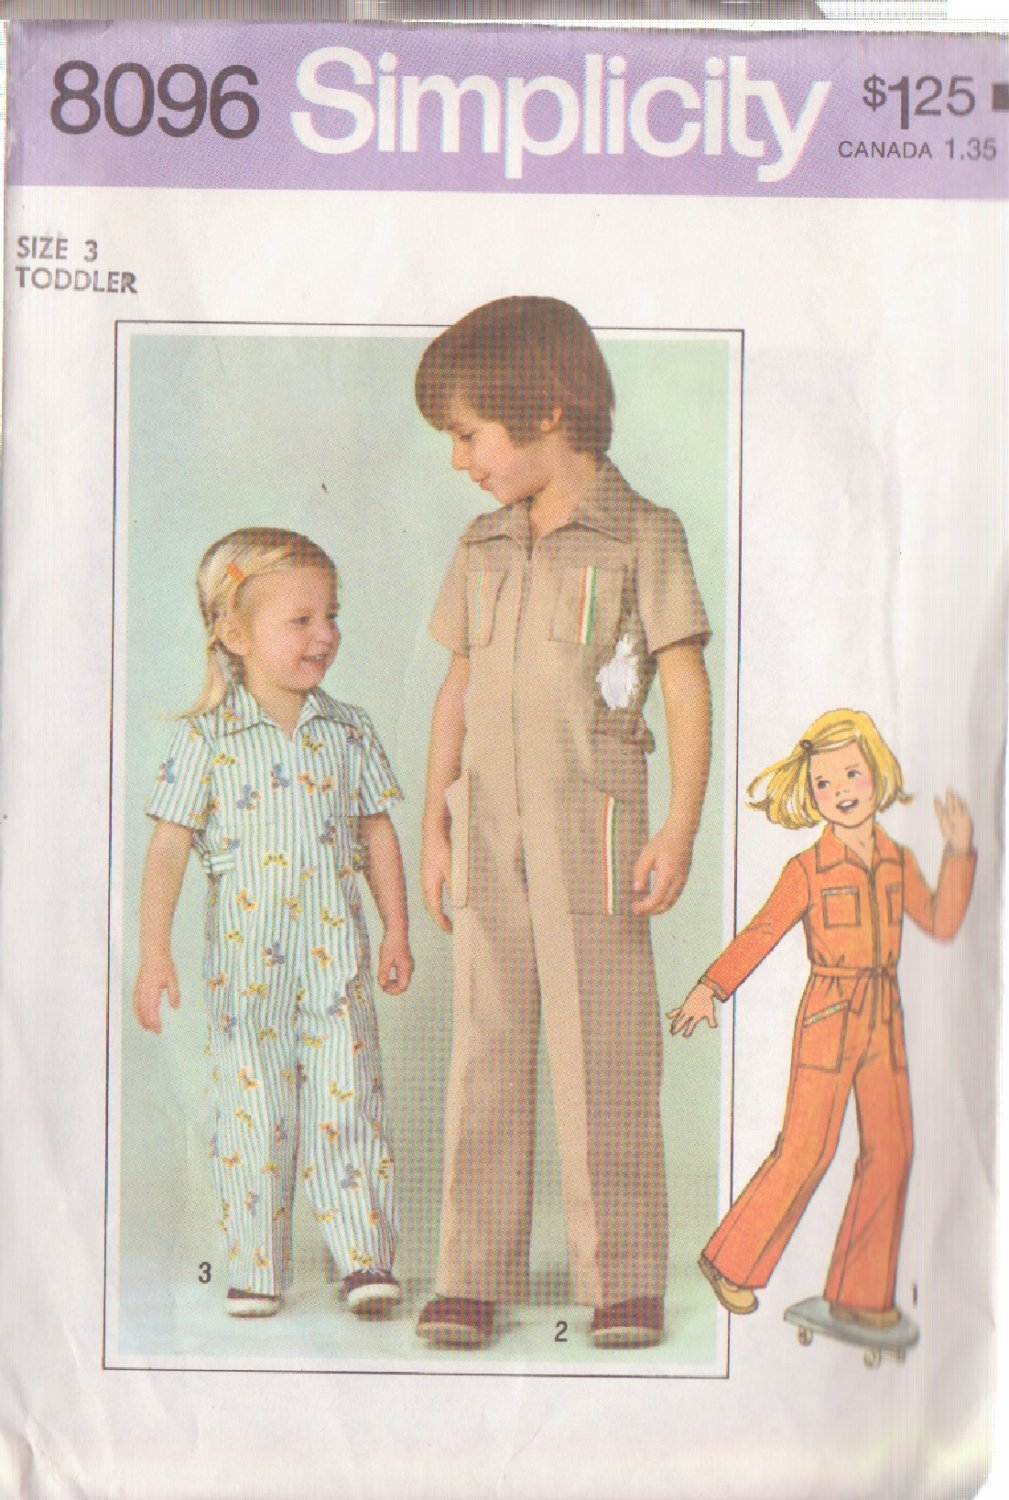 SIMPLICITY VINTAGE PATTERN 8096 SIZE 3 CHILD'S JUMPSUIT IN 3 VARIATIONS